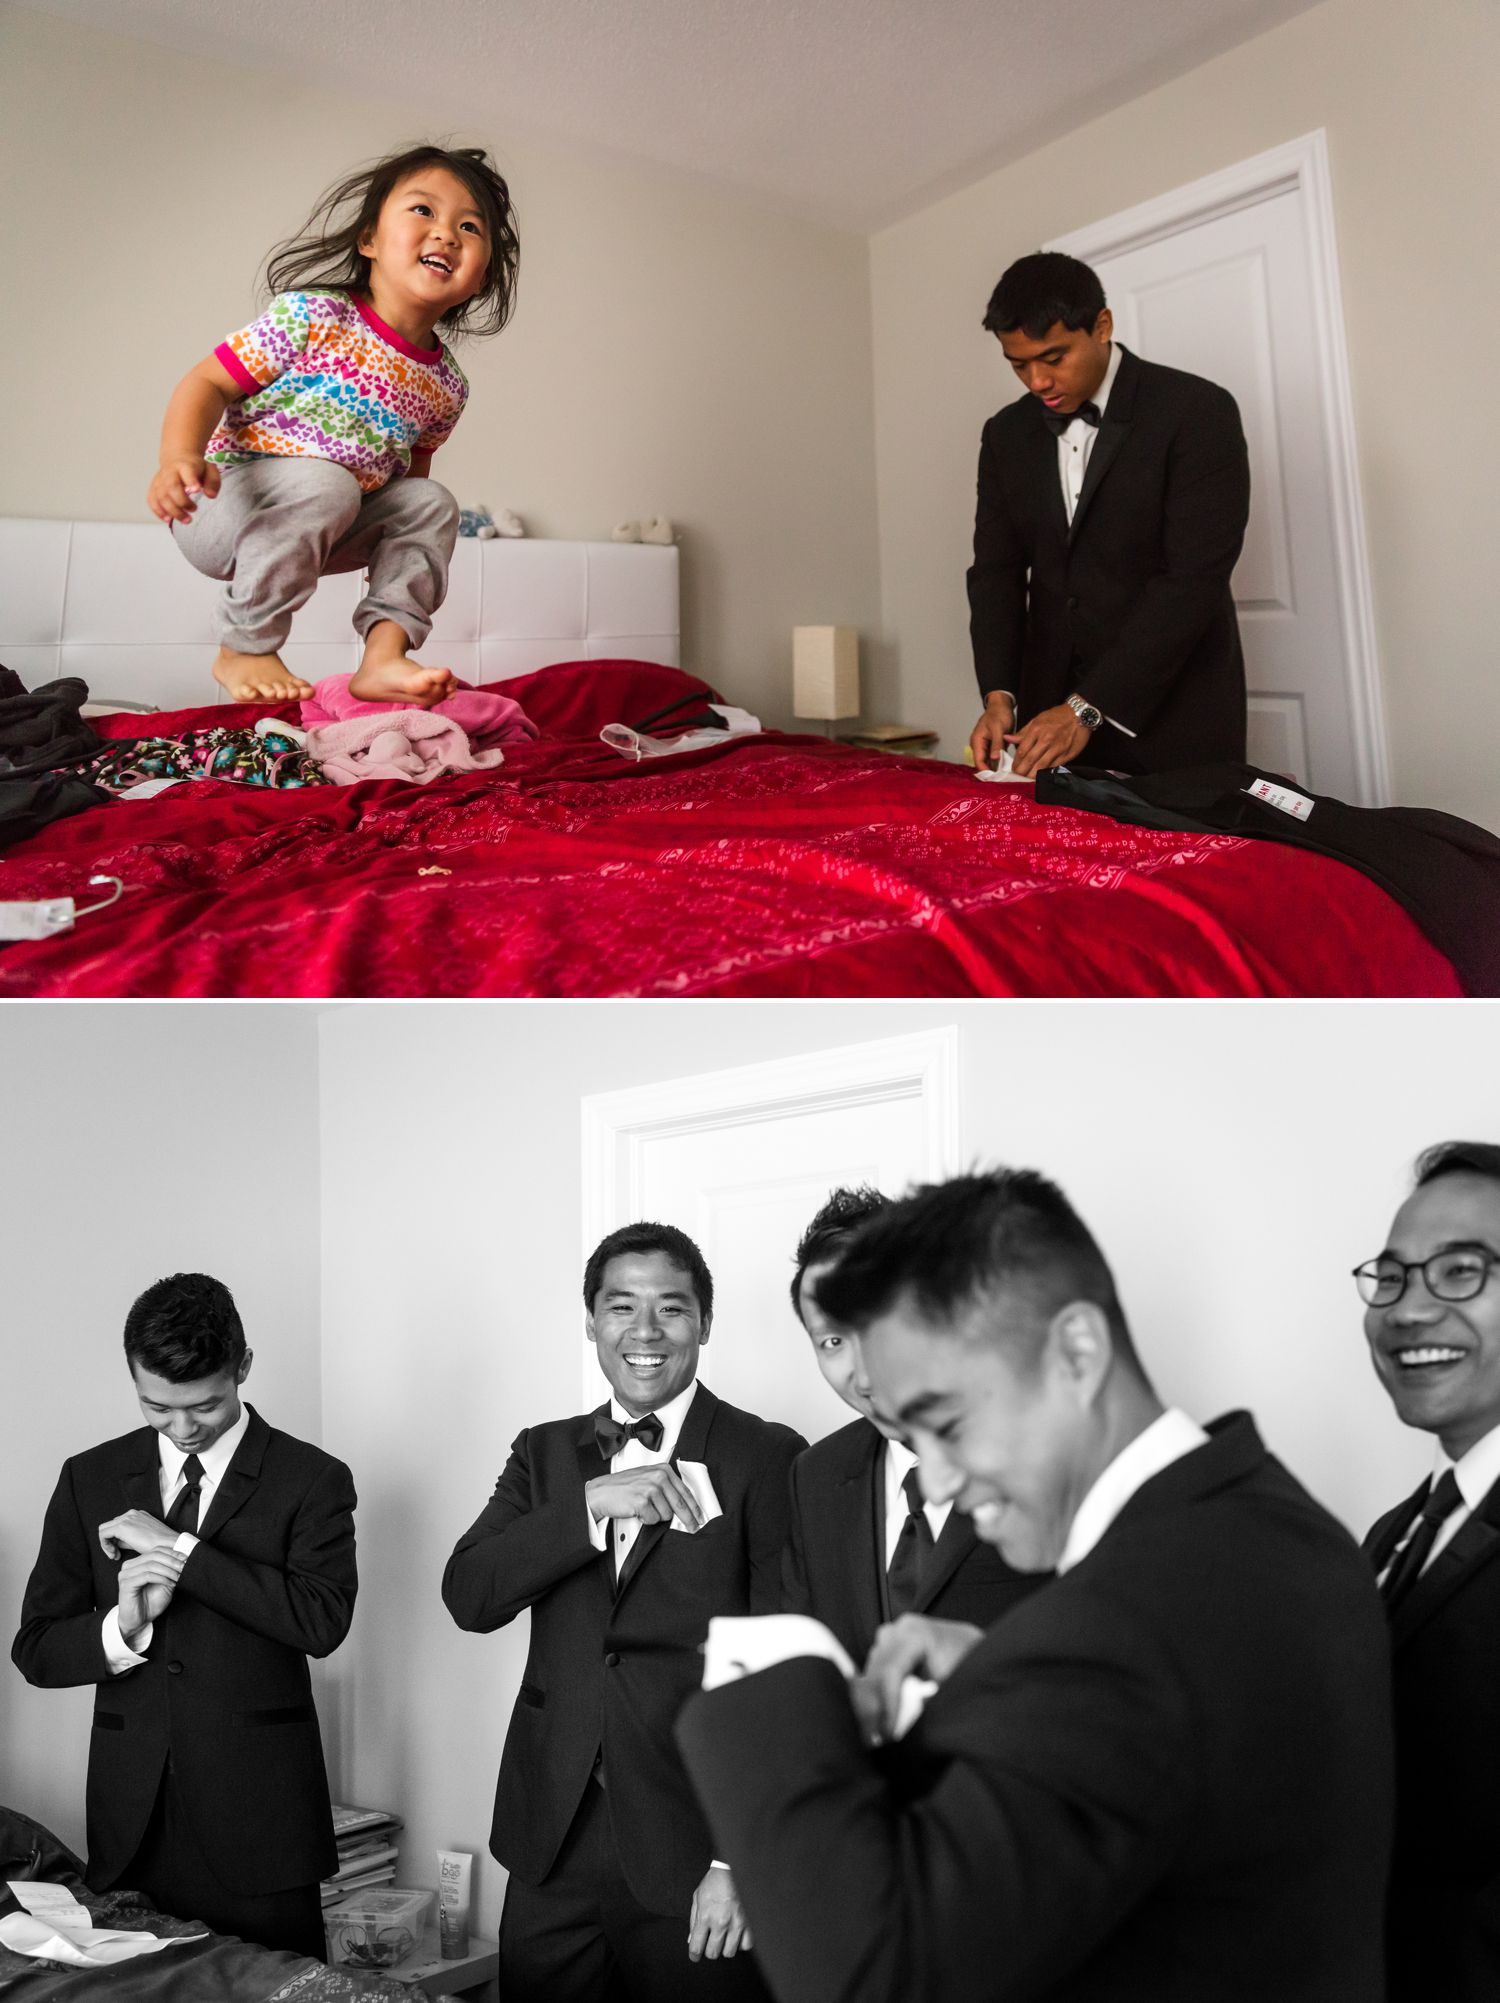 The groom with his groomsmen getting ready at their home in Ottawa